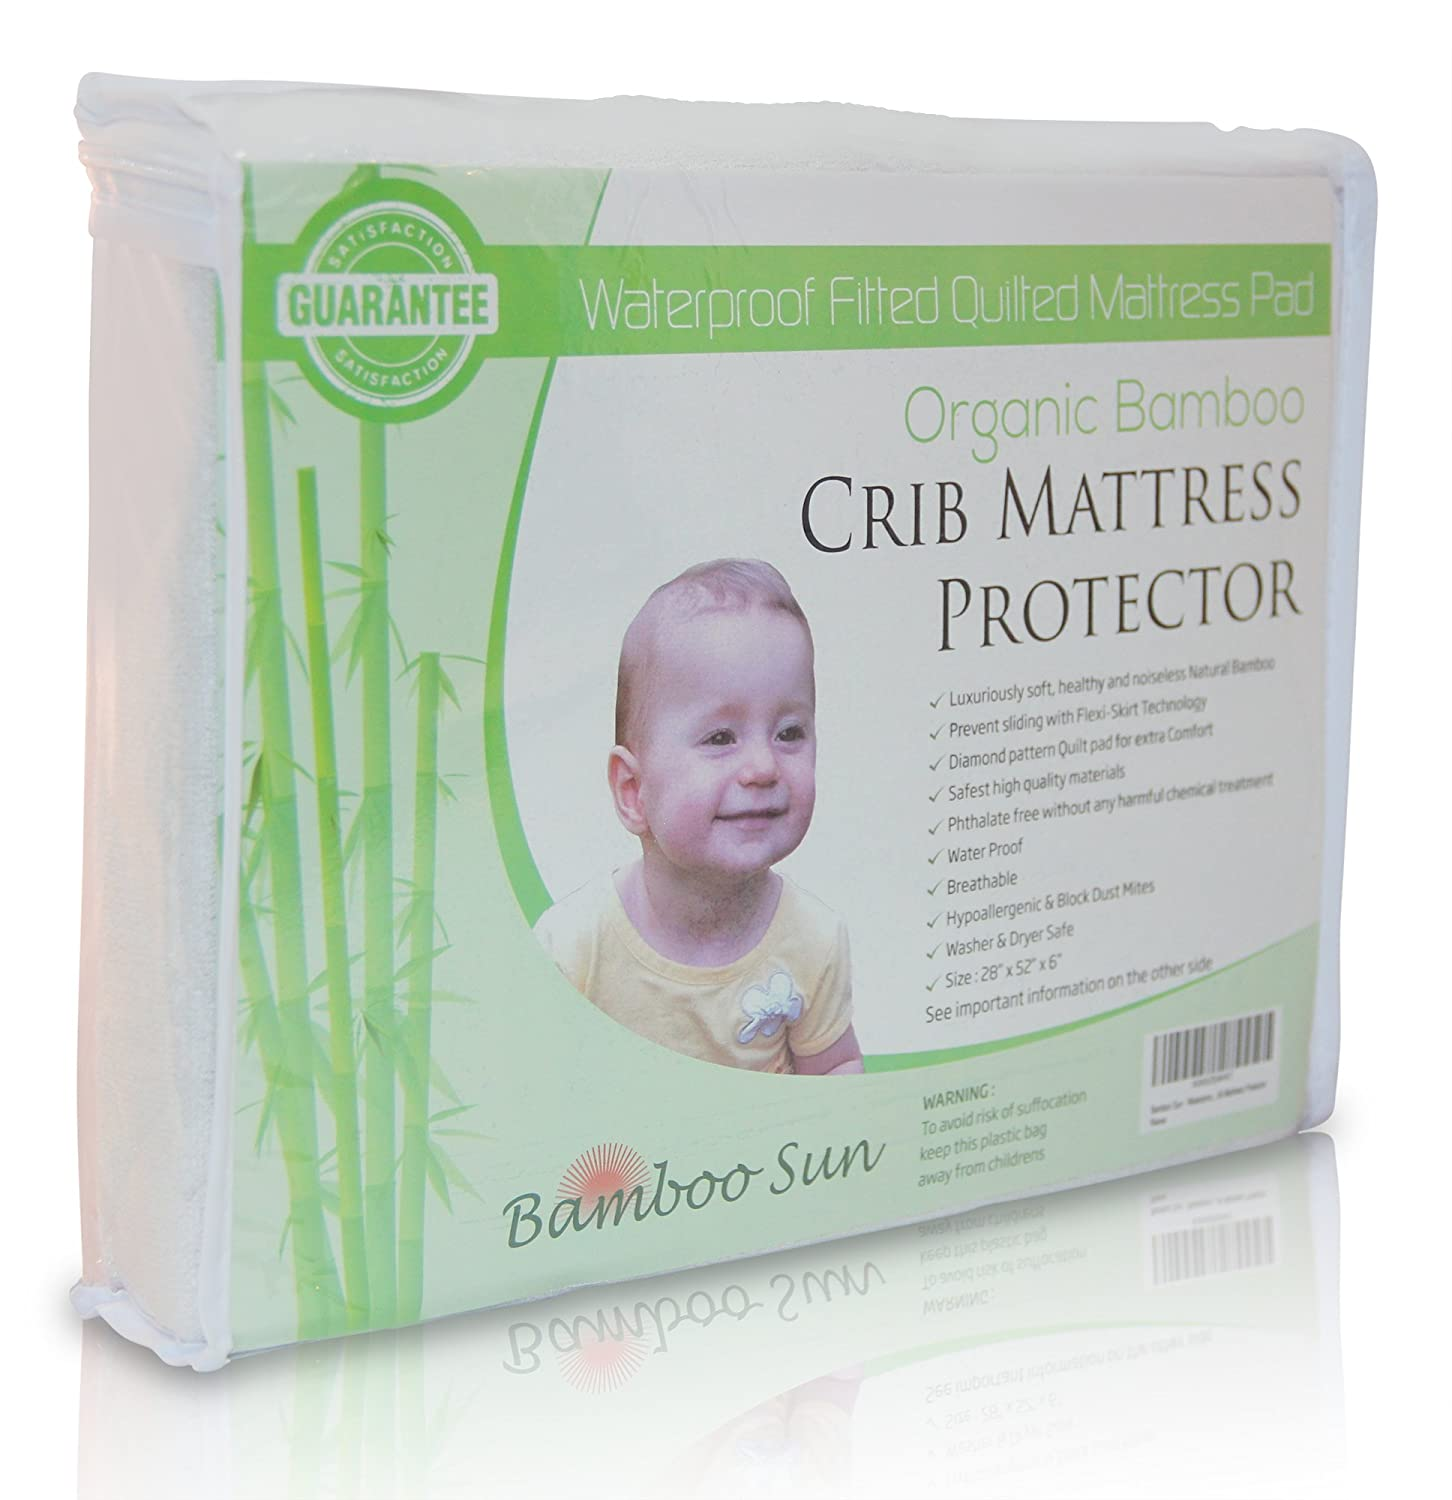 Bamboo Sun - Waterproof Fitted Quilted Mattress Pad - Organic Bamboo Crib Mattress Protector